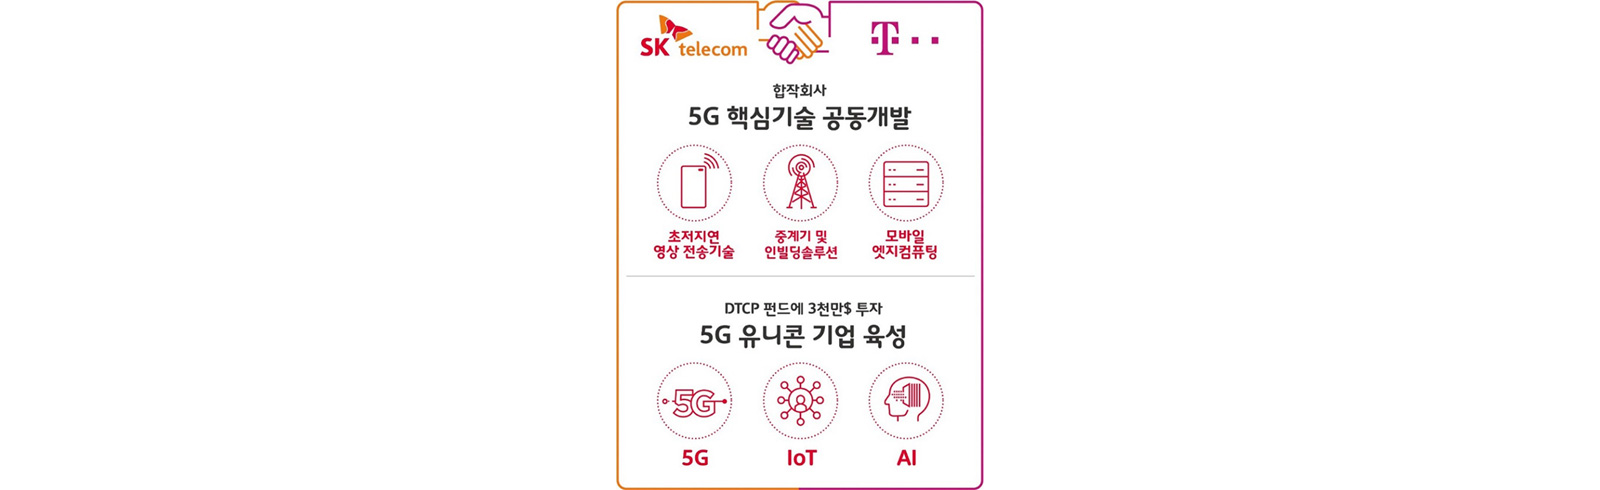 SK Telecom and Deutsche Telekom will create a joint venture to focus on 5G development